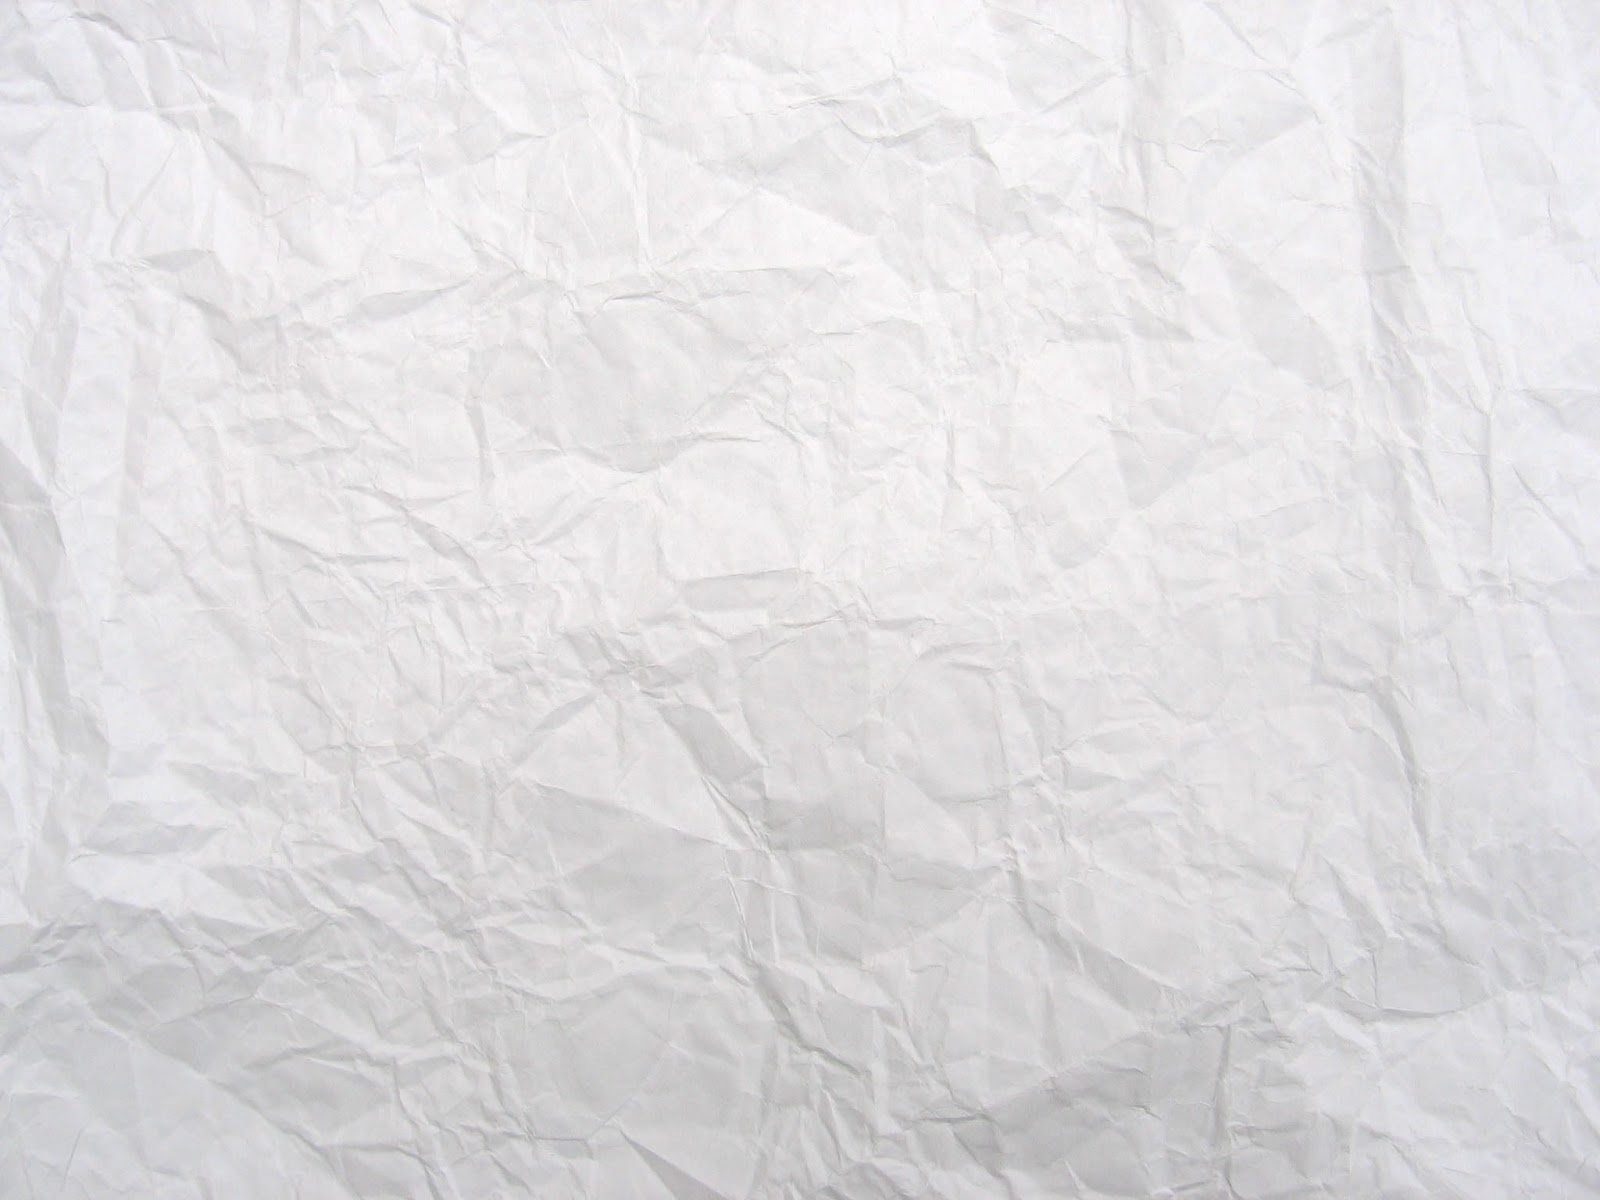 Crumpled White Paper Texture Hd